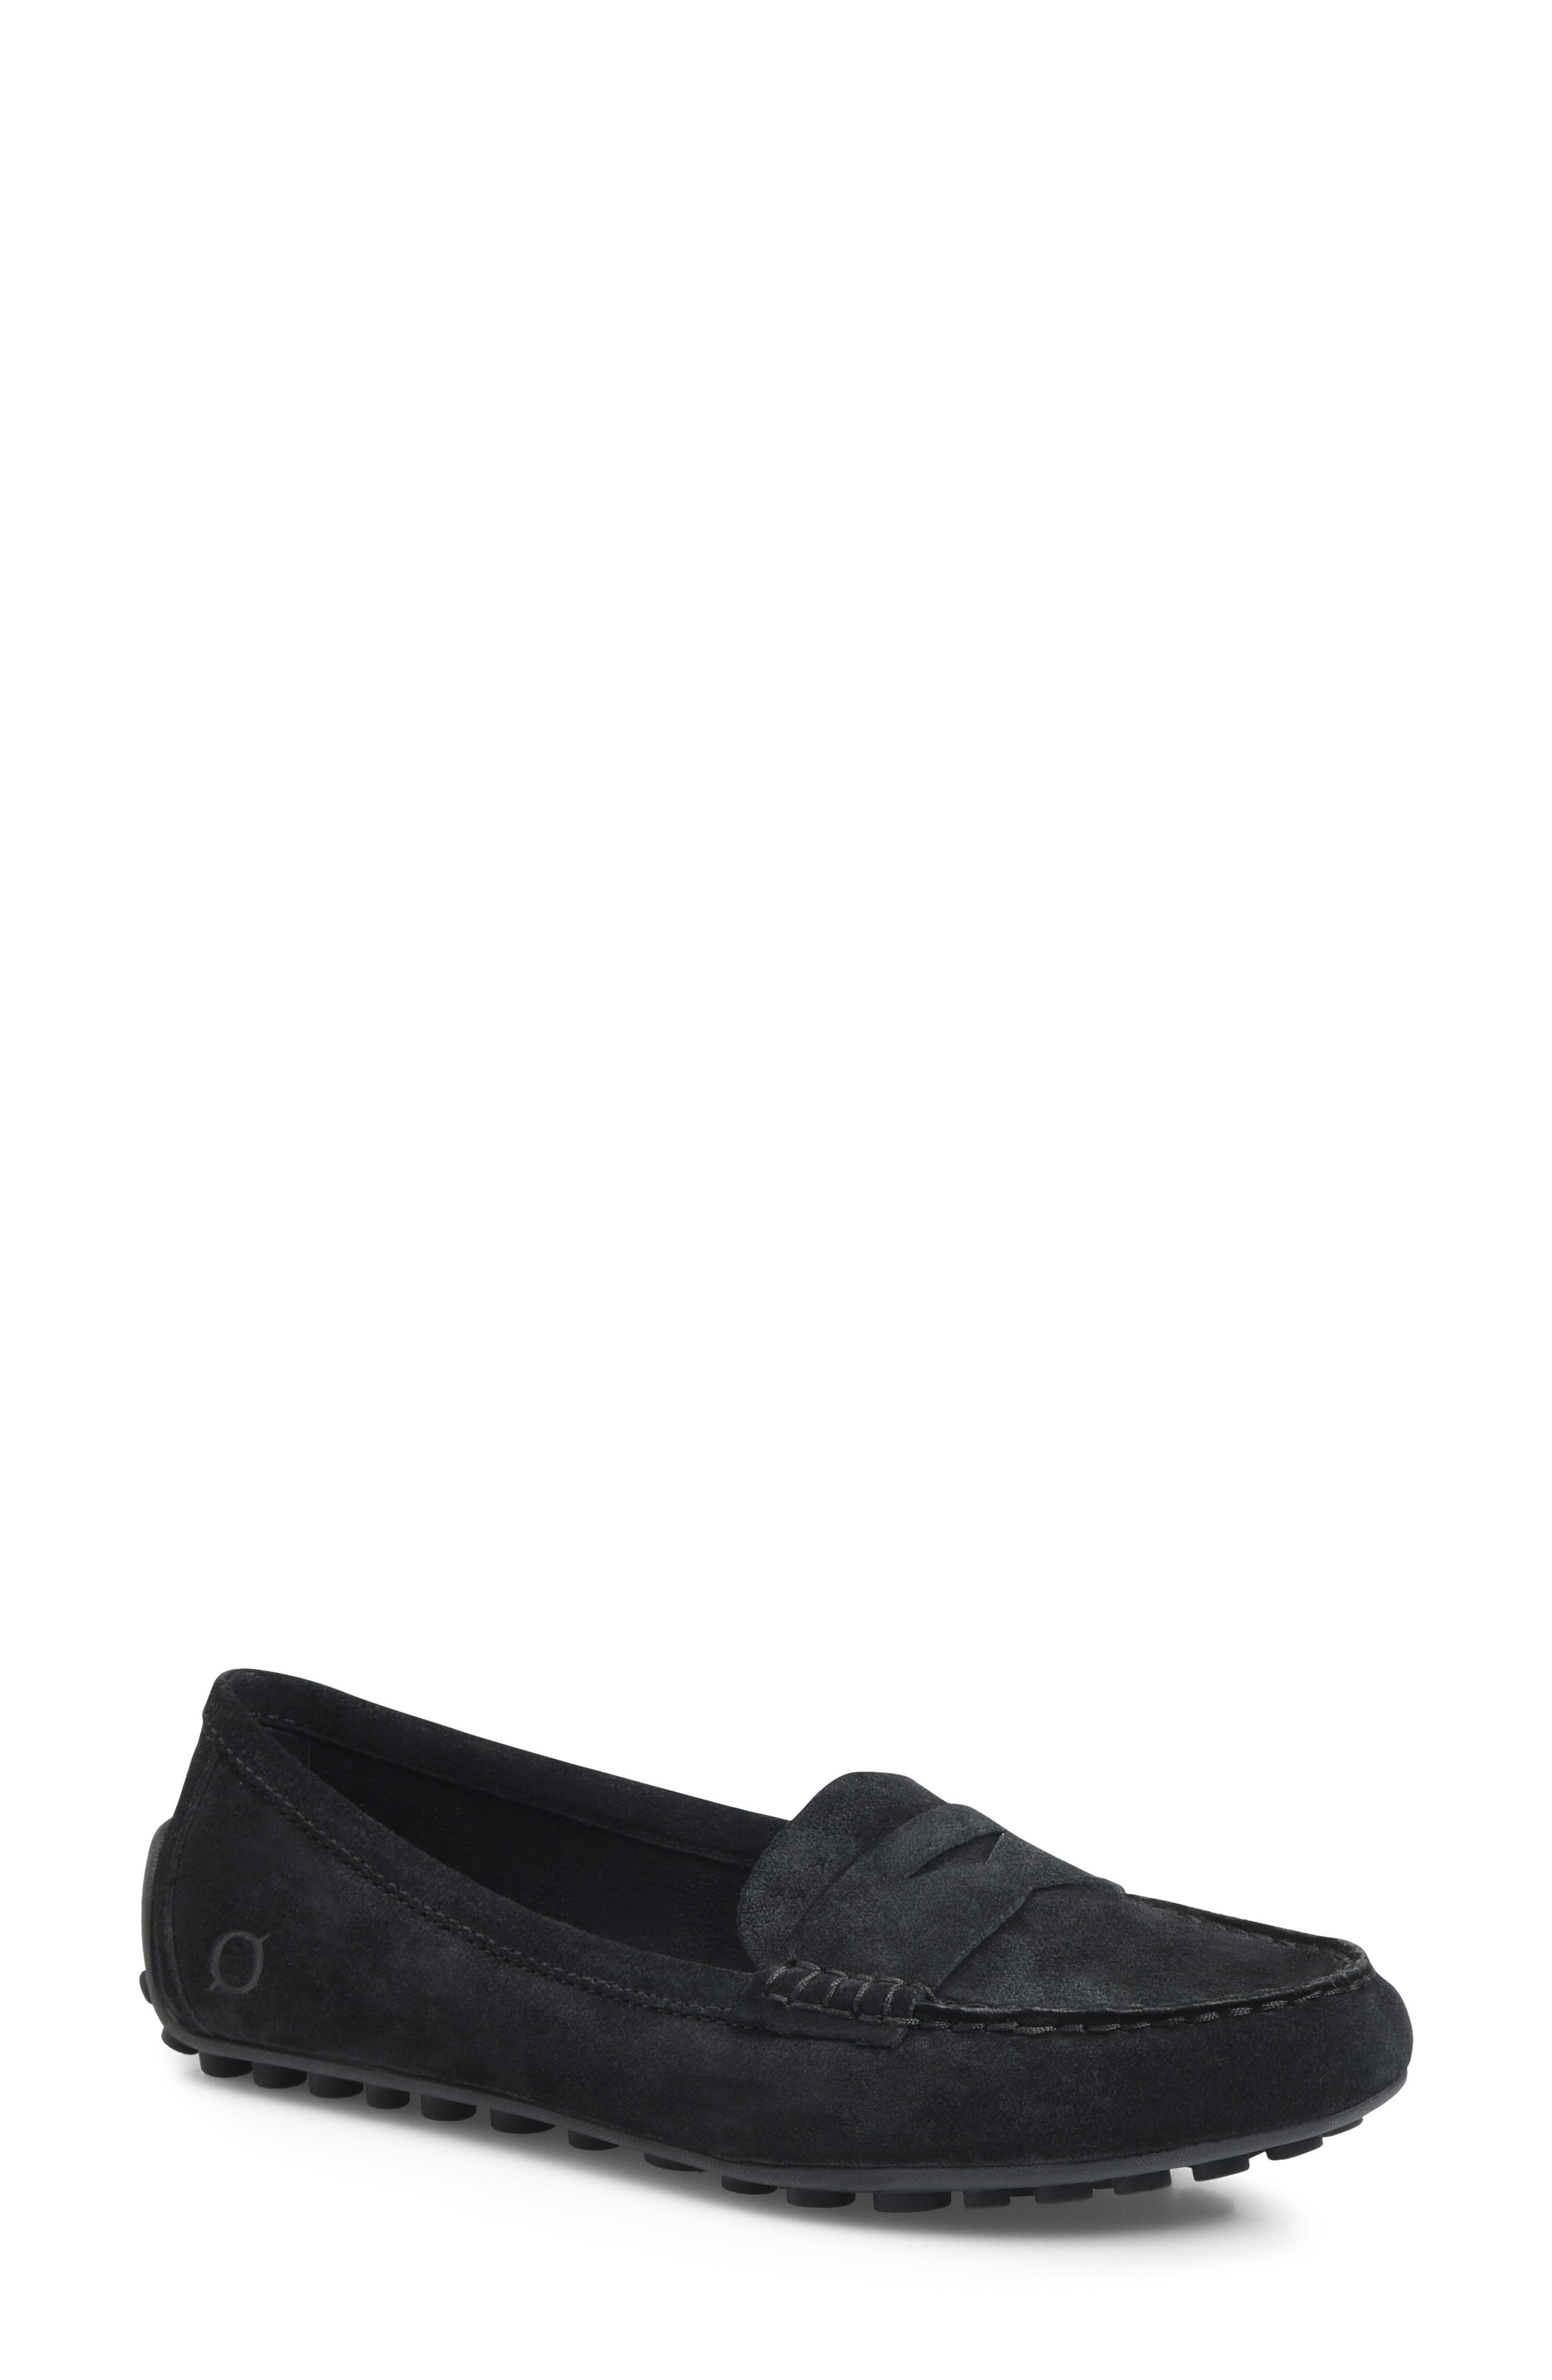 Malena Penny Loafer,                         Main,                         color, BLACK SUEDE